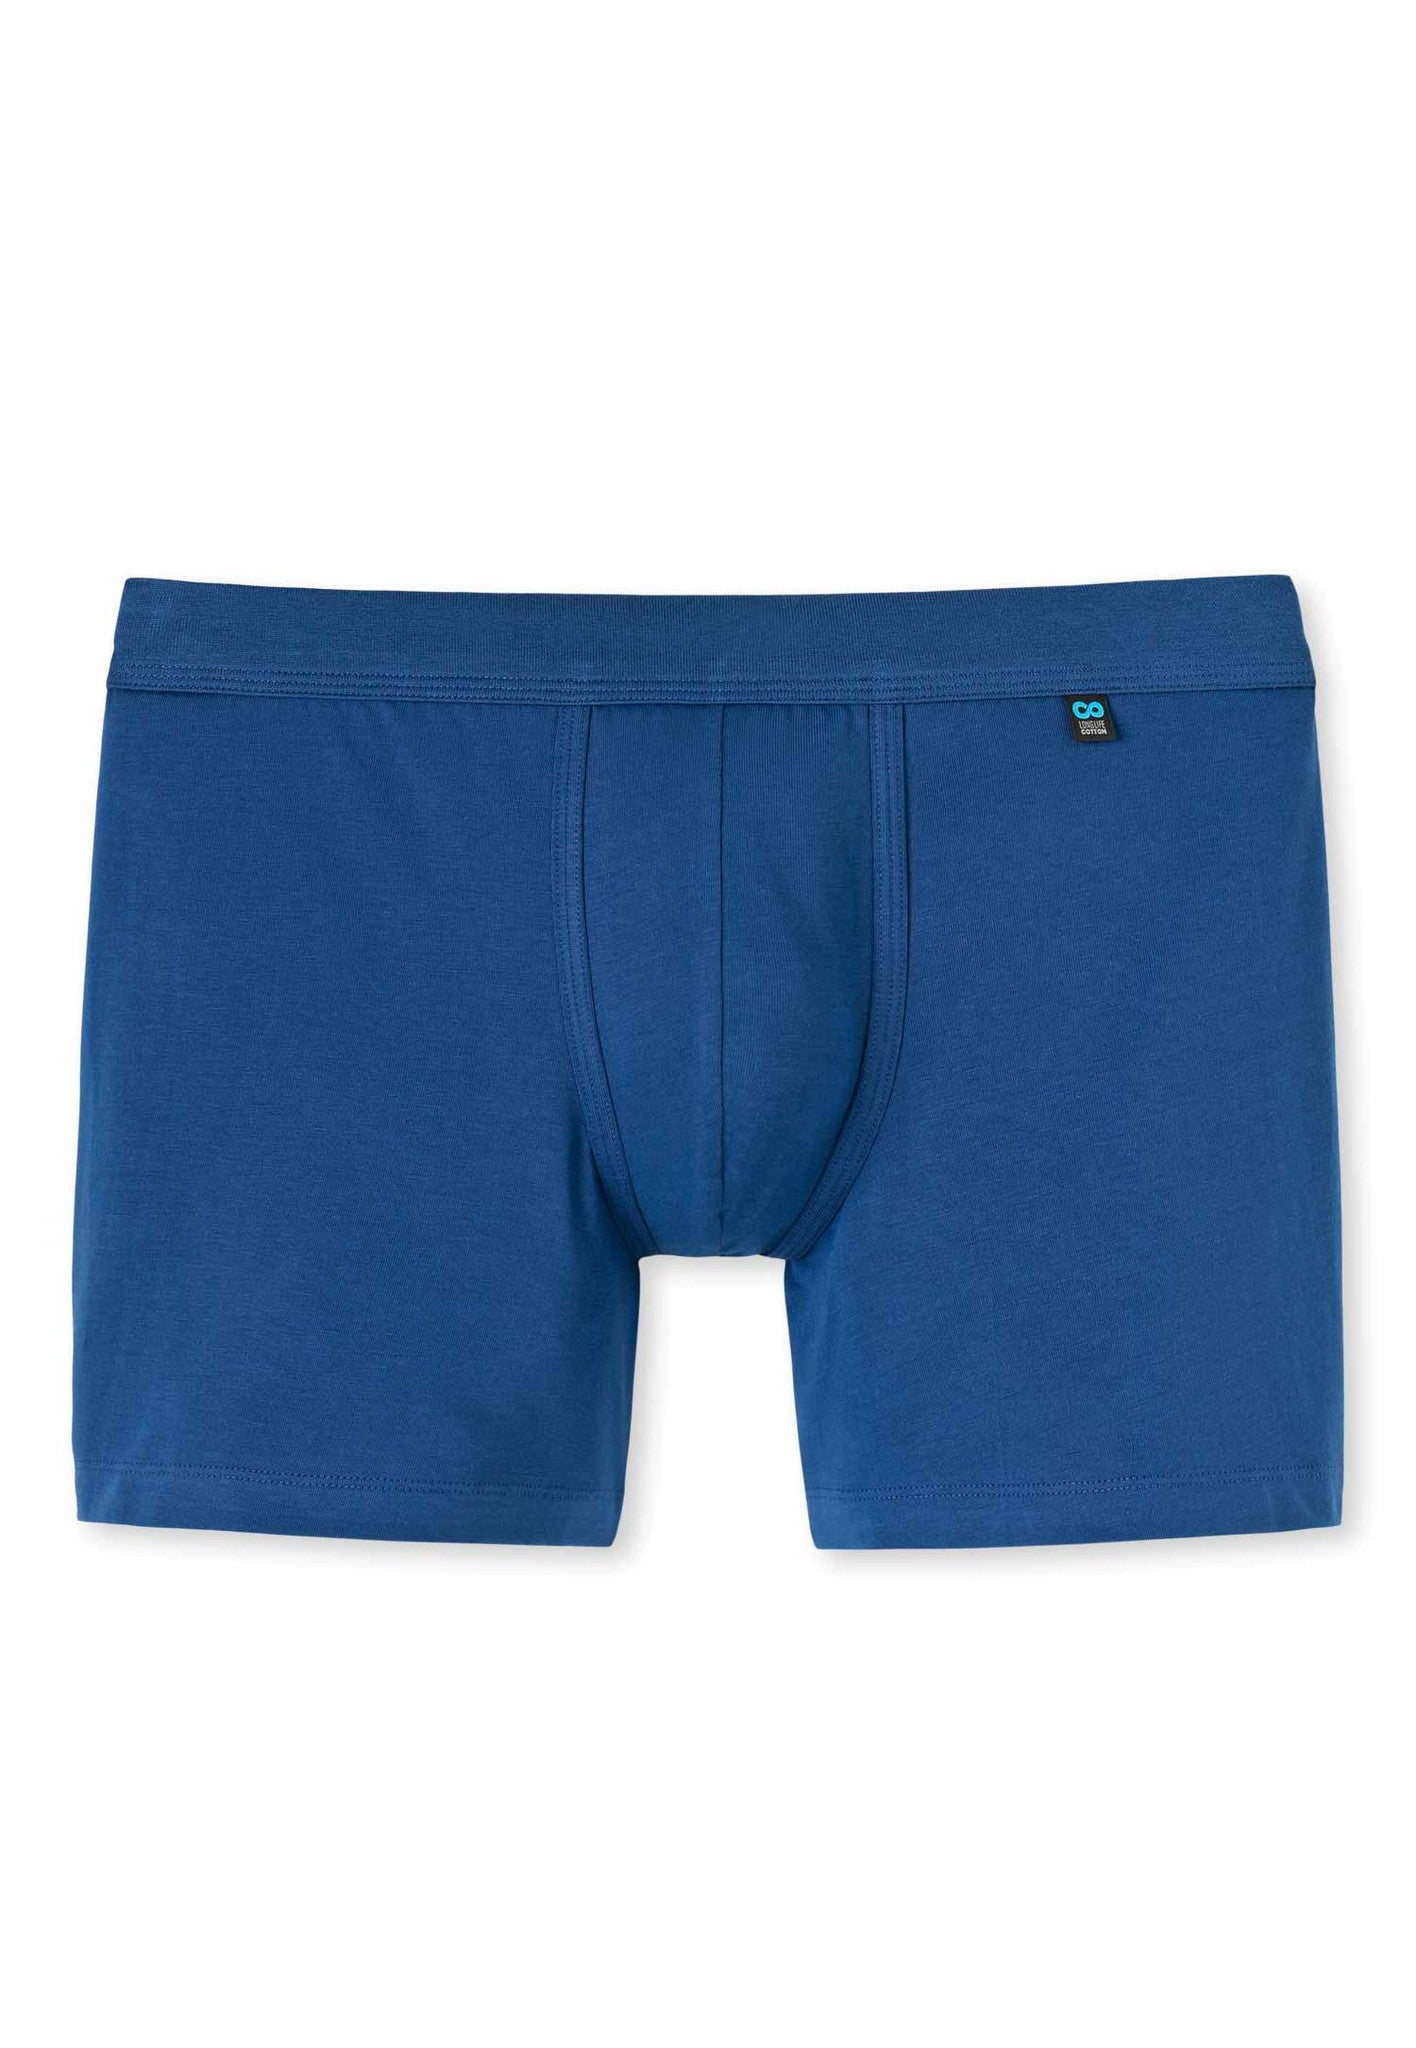 Cyclist Shorts - Long Life Cotton